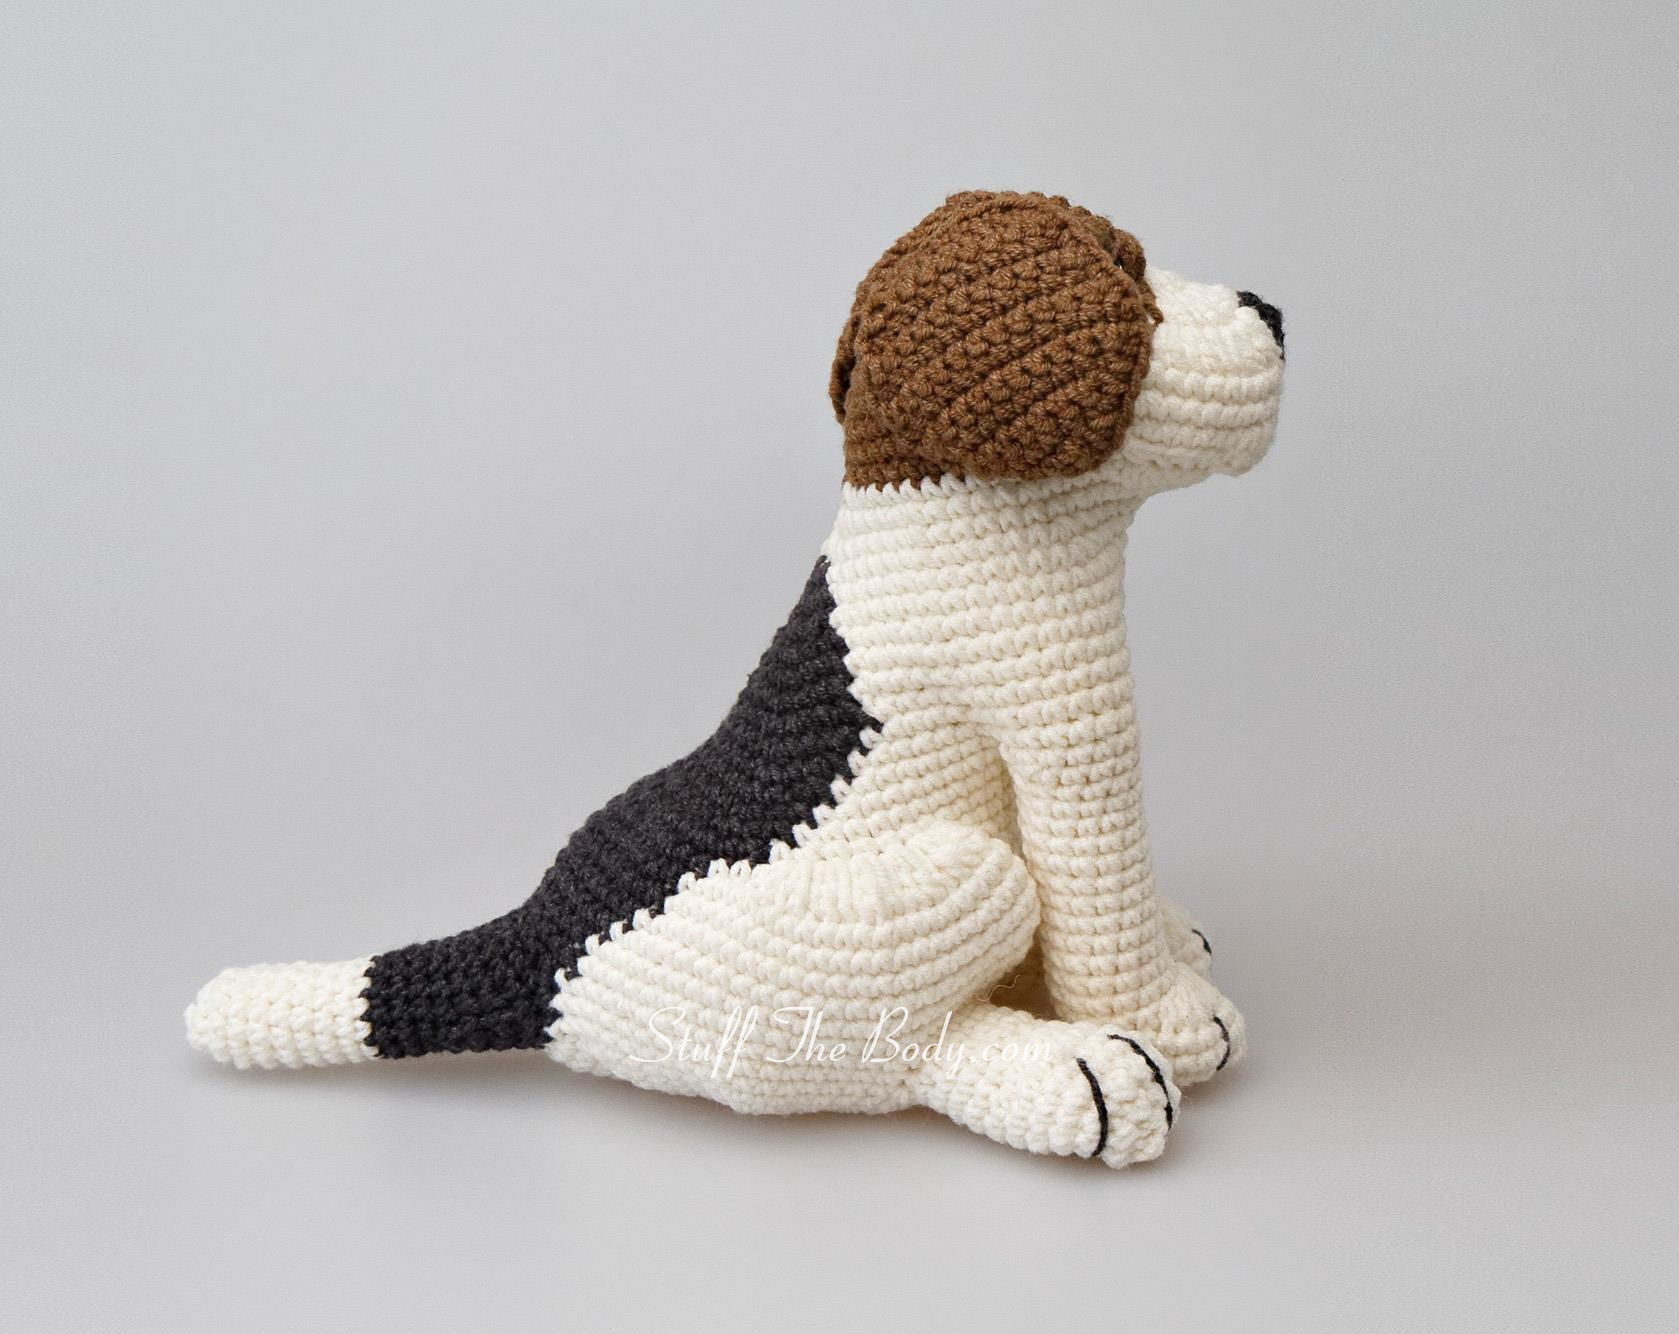 Dolphin Amigurumi Free Crochet Pattern : Azor The Beagle Dog Amigurumi Pattern Stuff The Body